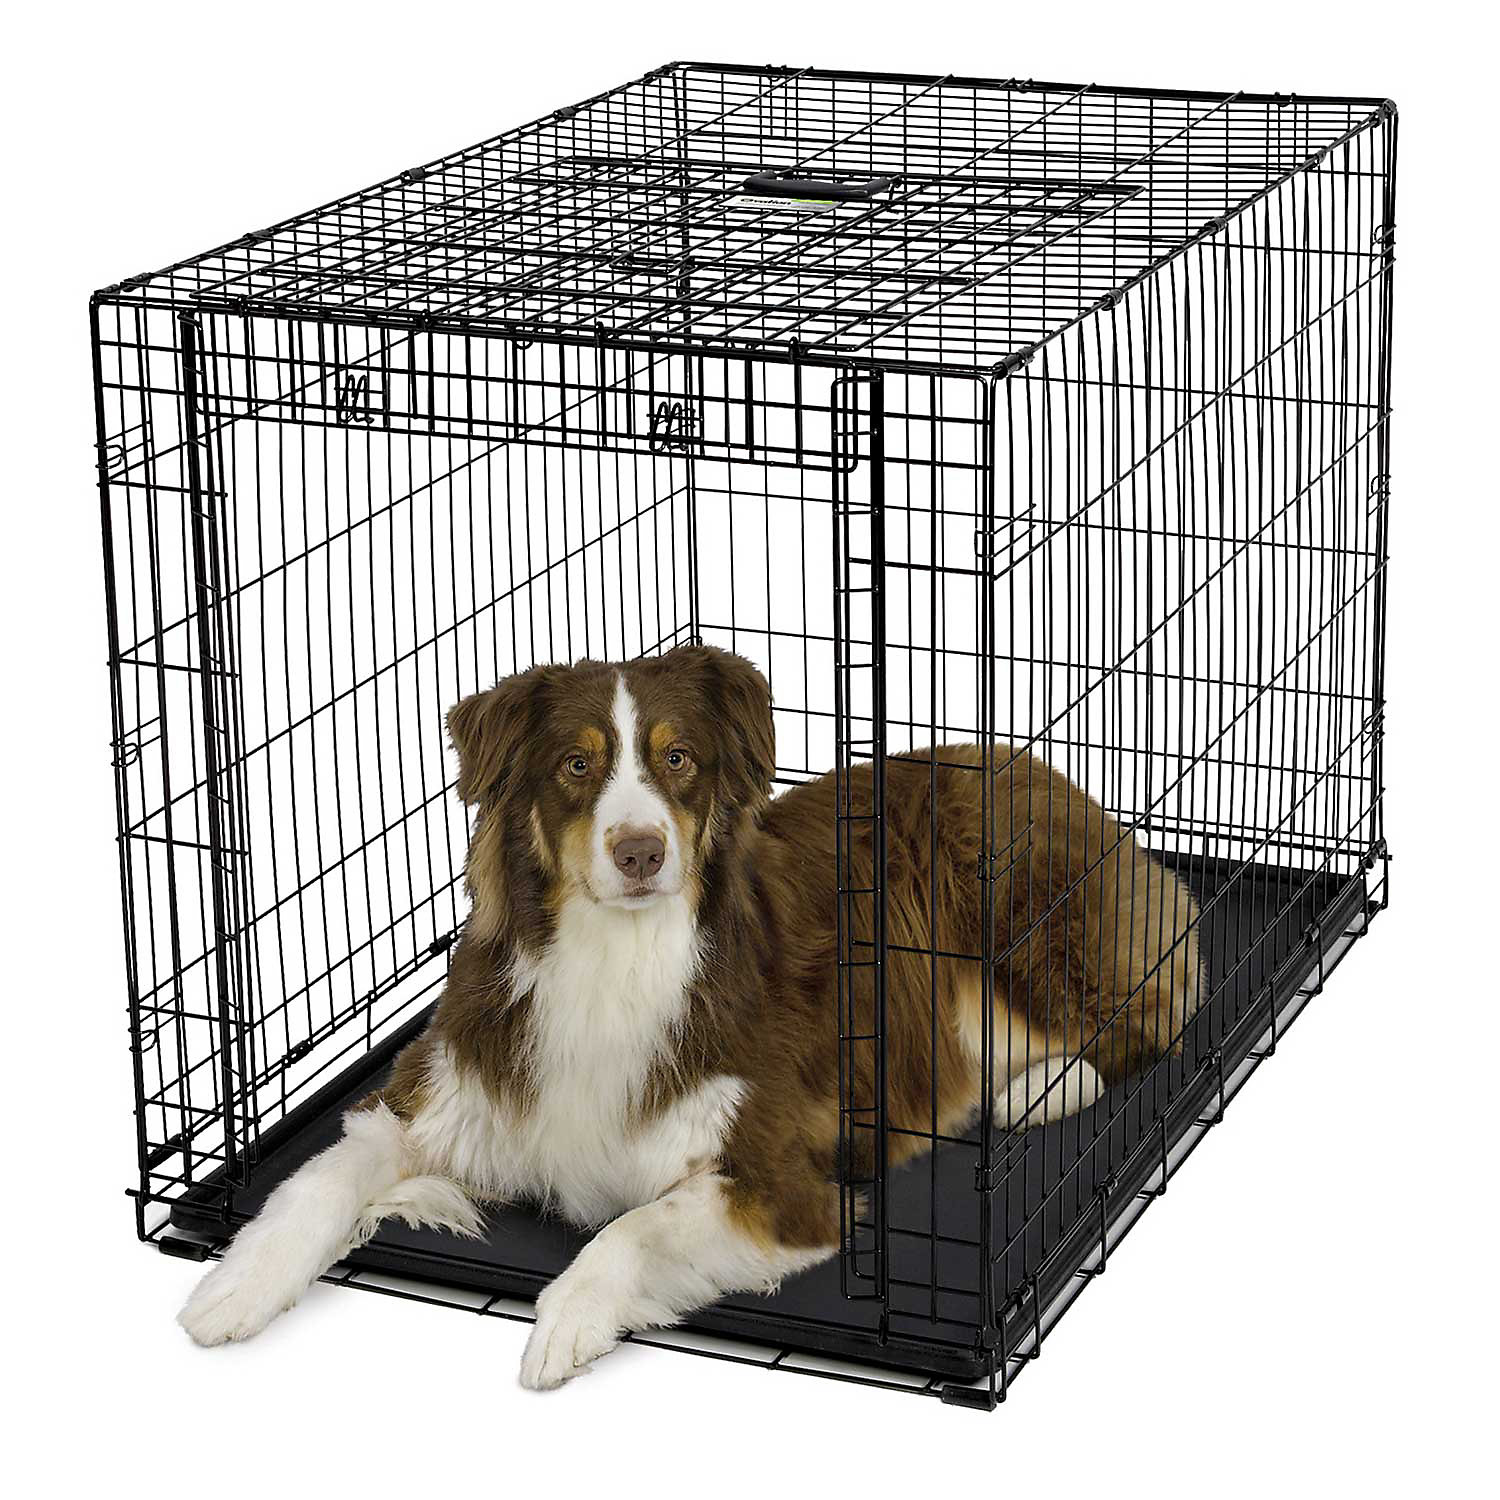 Midwest Ovation Single Door Folding Dog Crate, 44″ L X 29″ W X 30″ H, Large